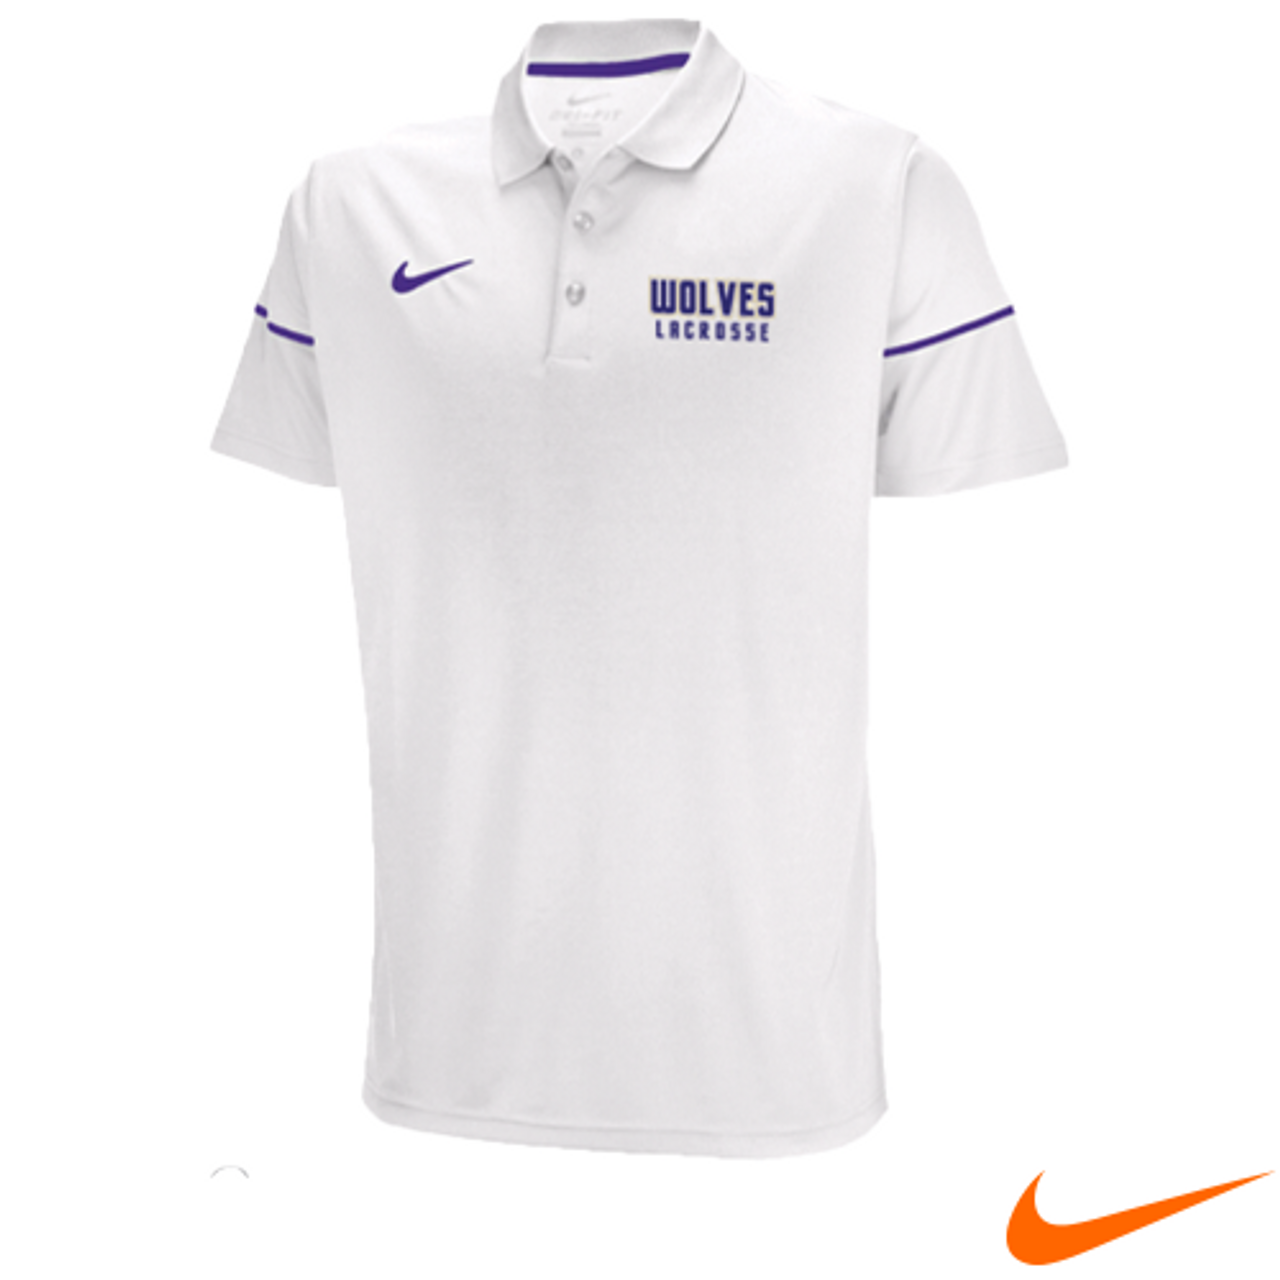 nike polo uniforms